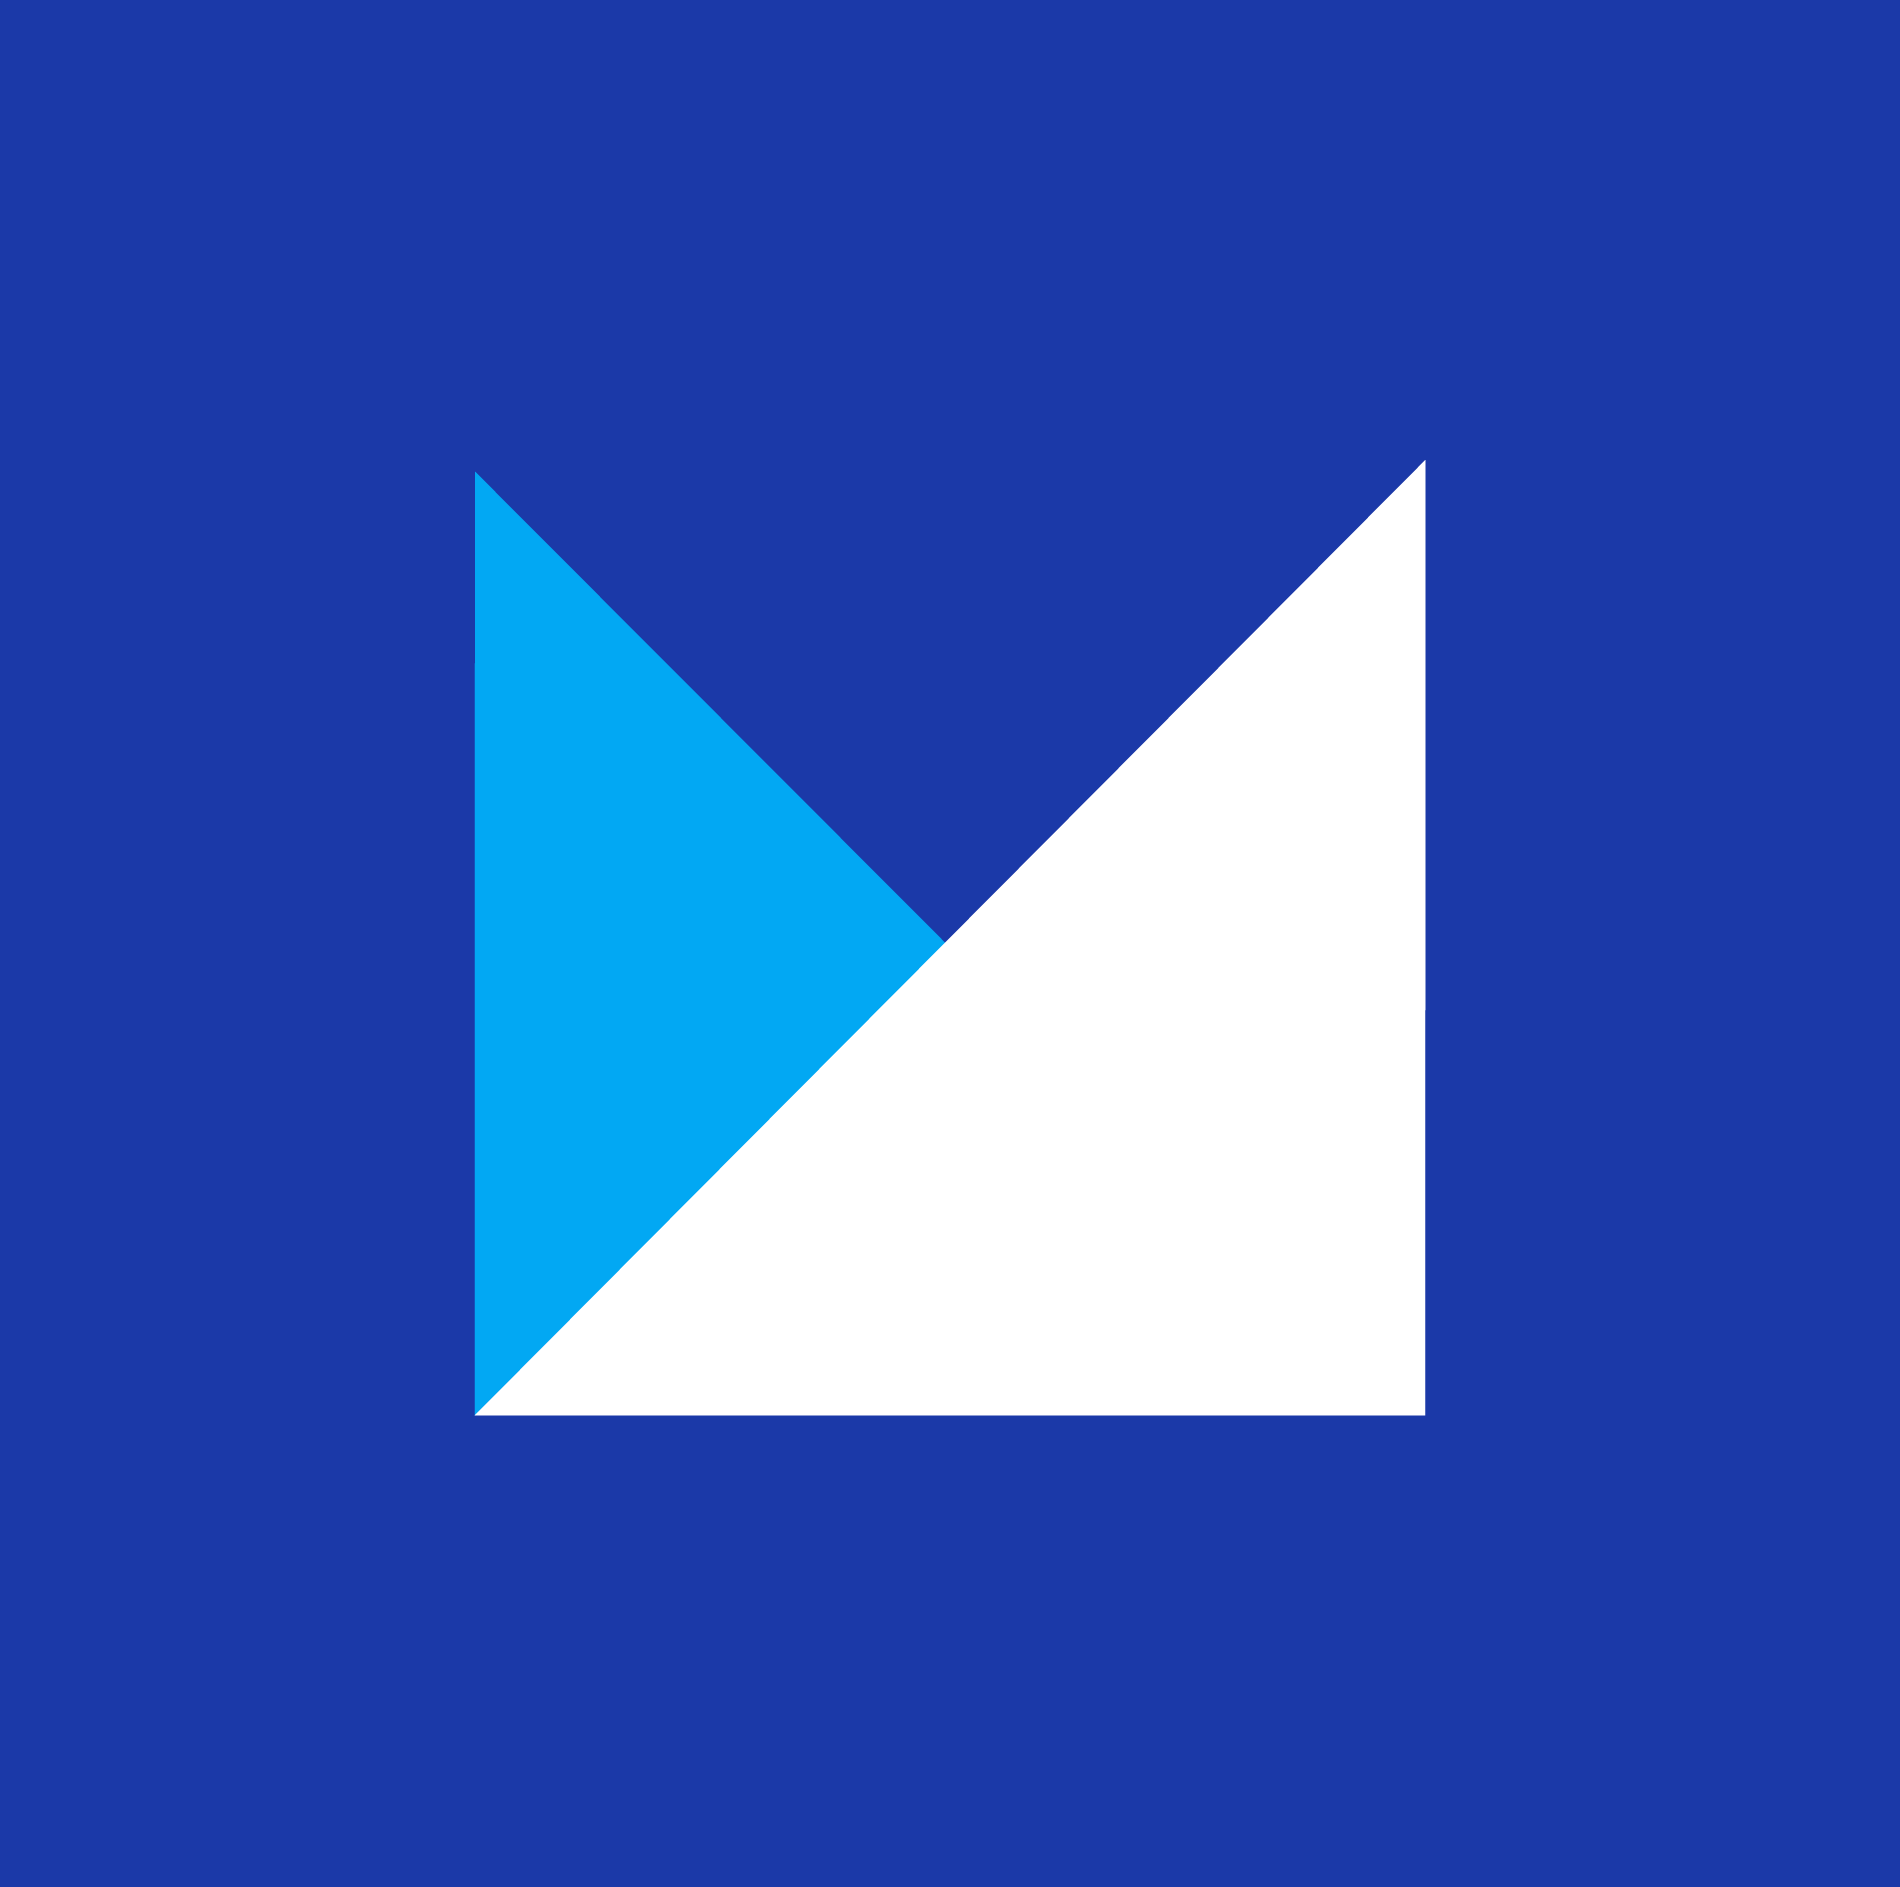 A showcase of 25 material design htmlcss code snippets some of the a showcase of 25 material design htmlcss code snippets some of the best spiritdancerdesigns Images